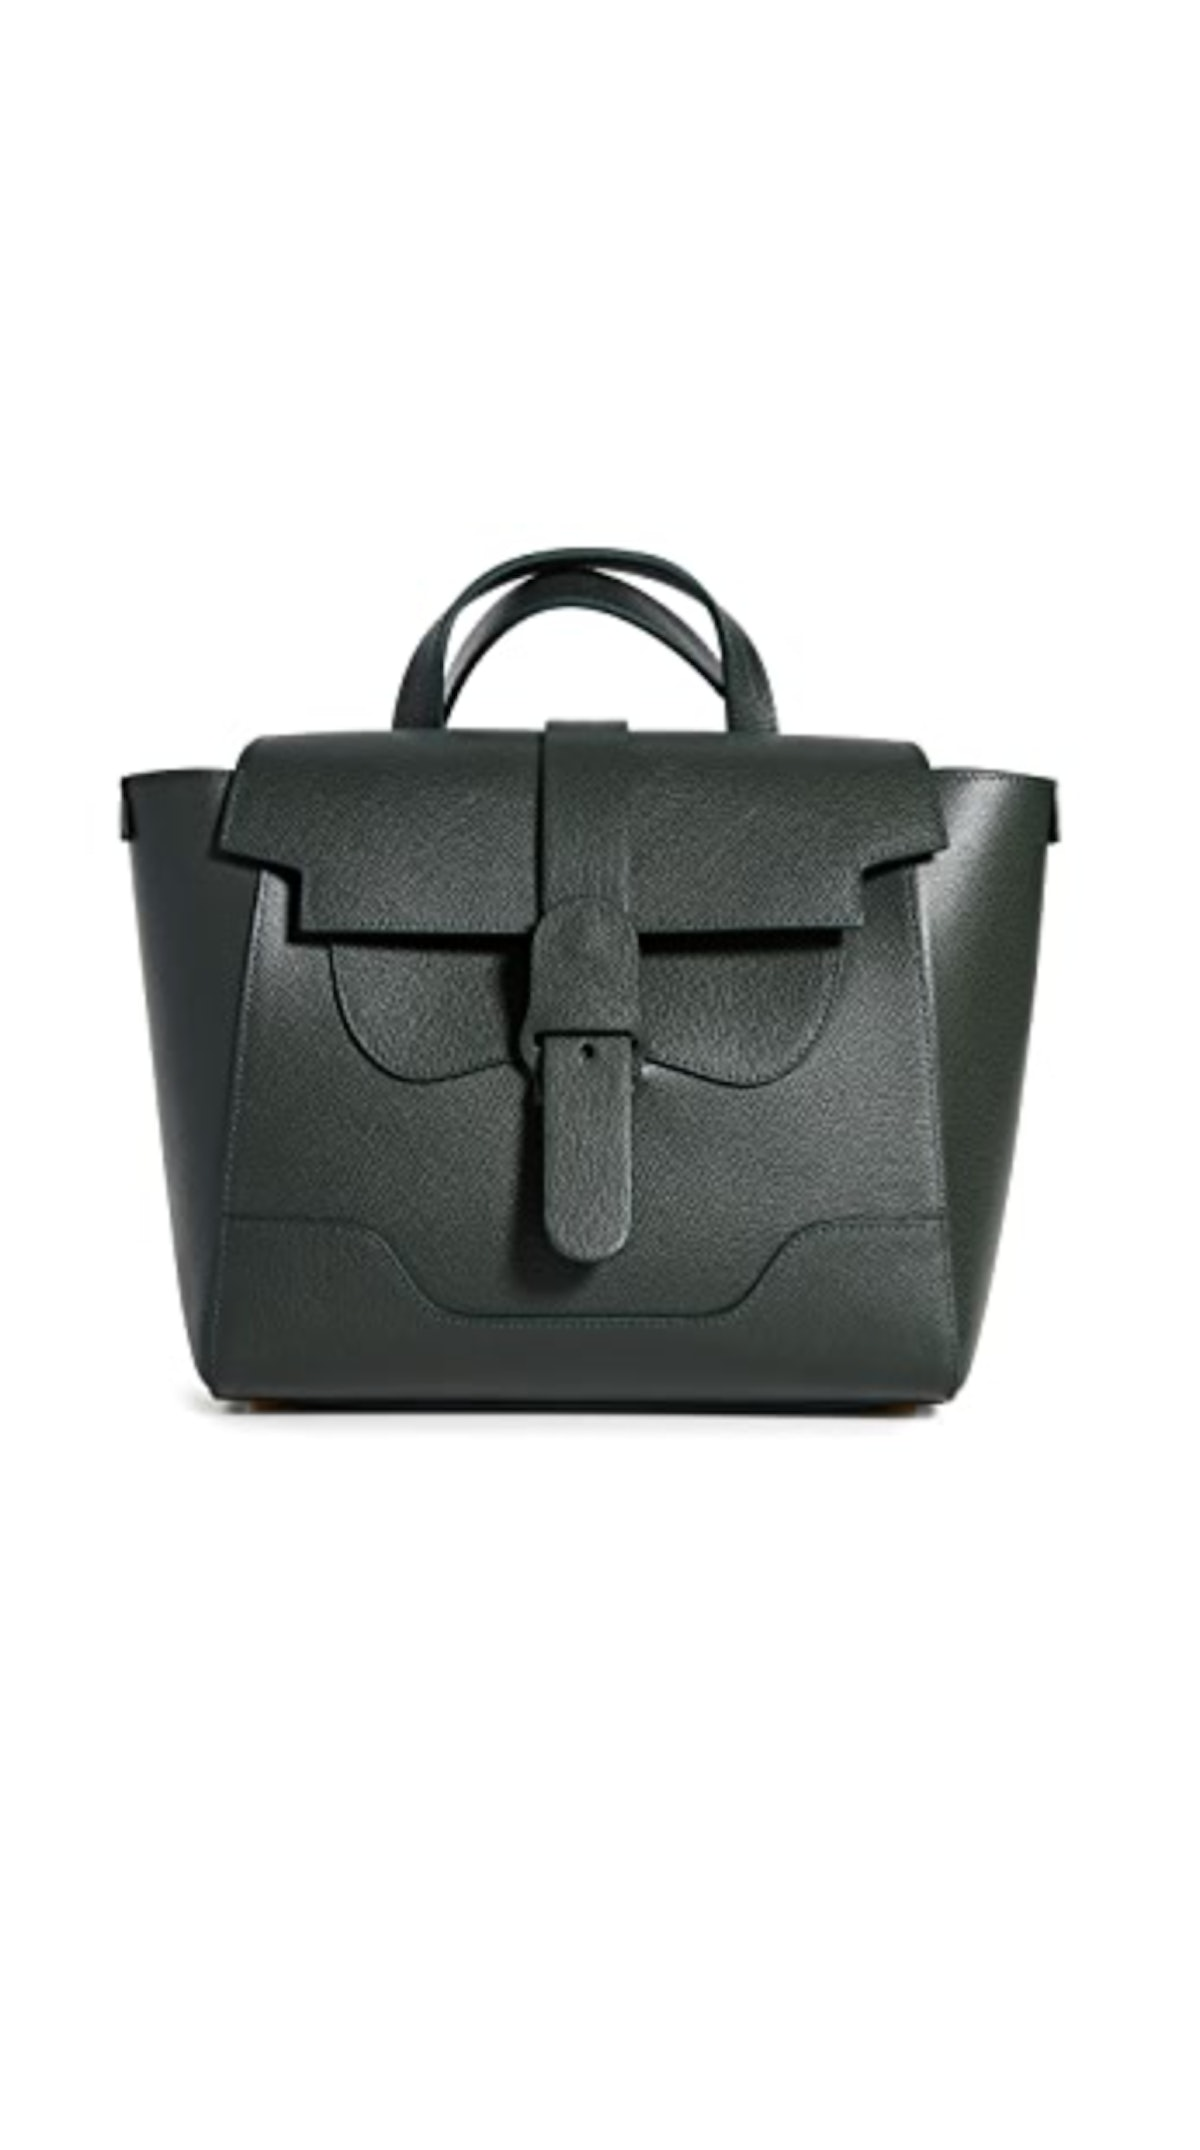 The Midi Maestra Bag in Forest